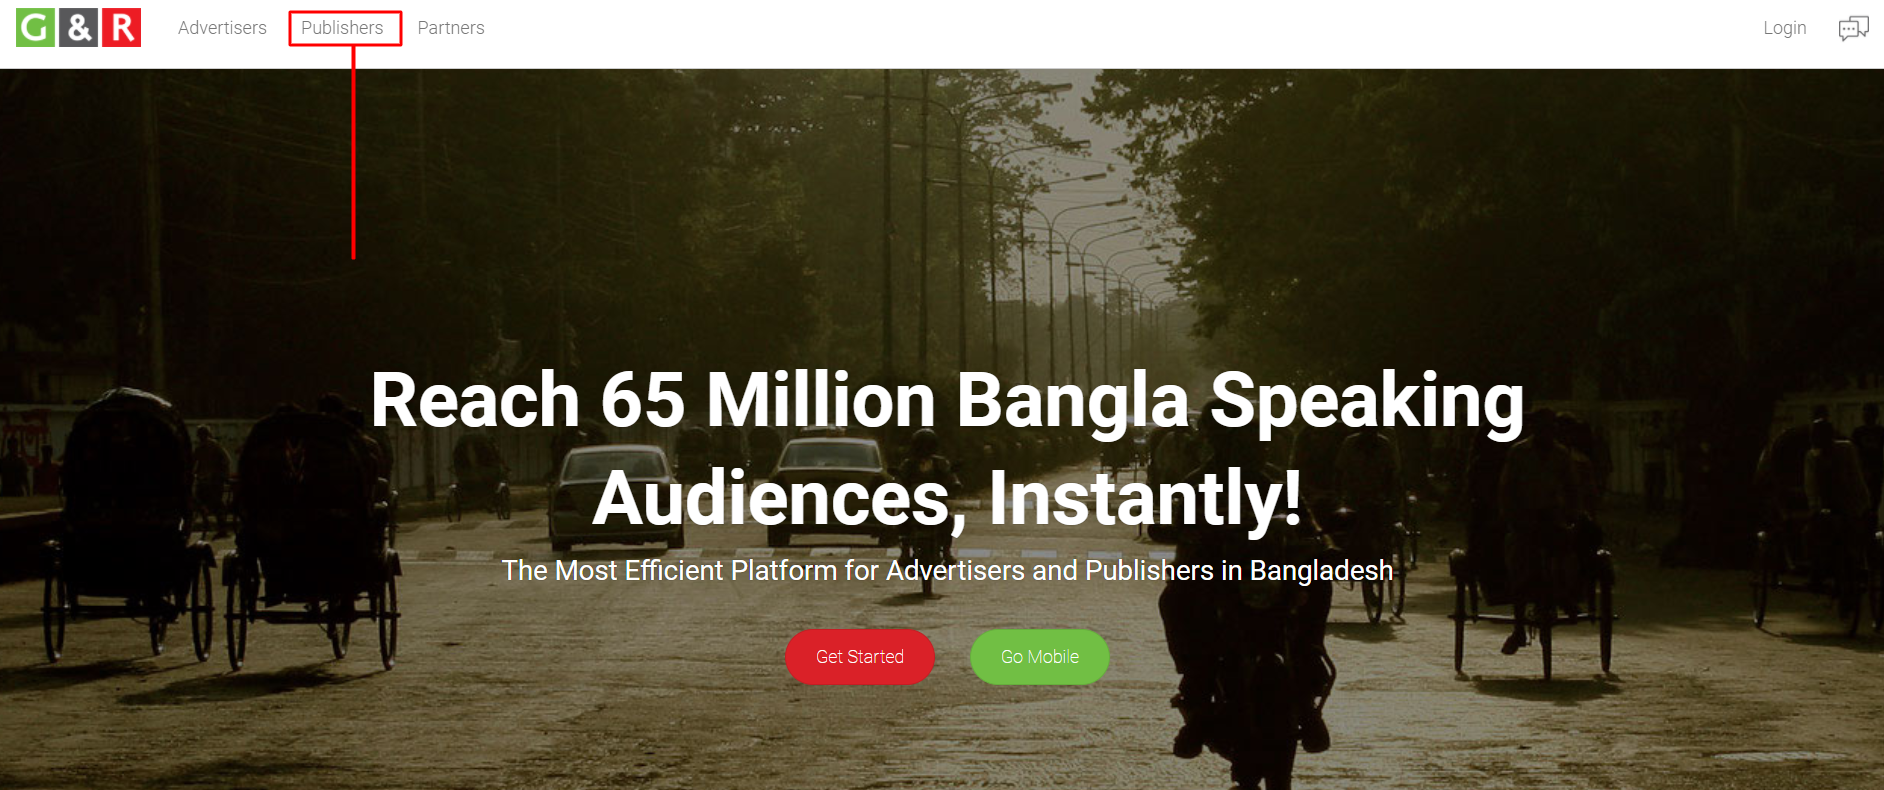 The Largest Online Ad Market in Bangladesh